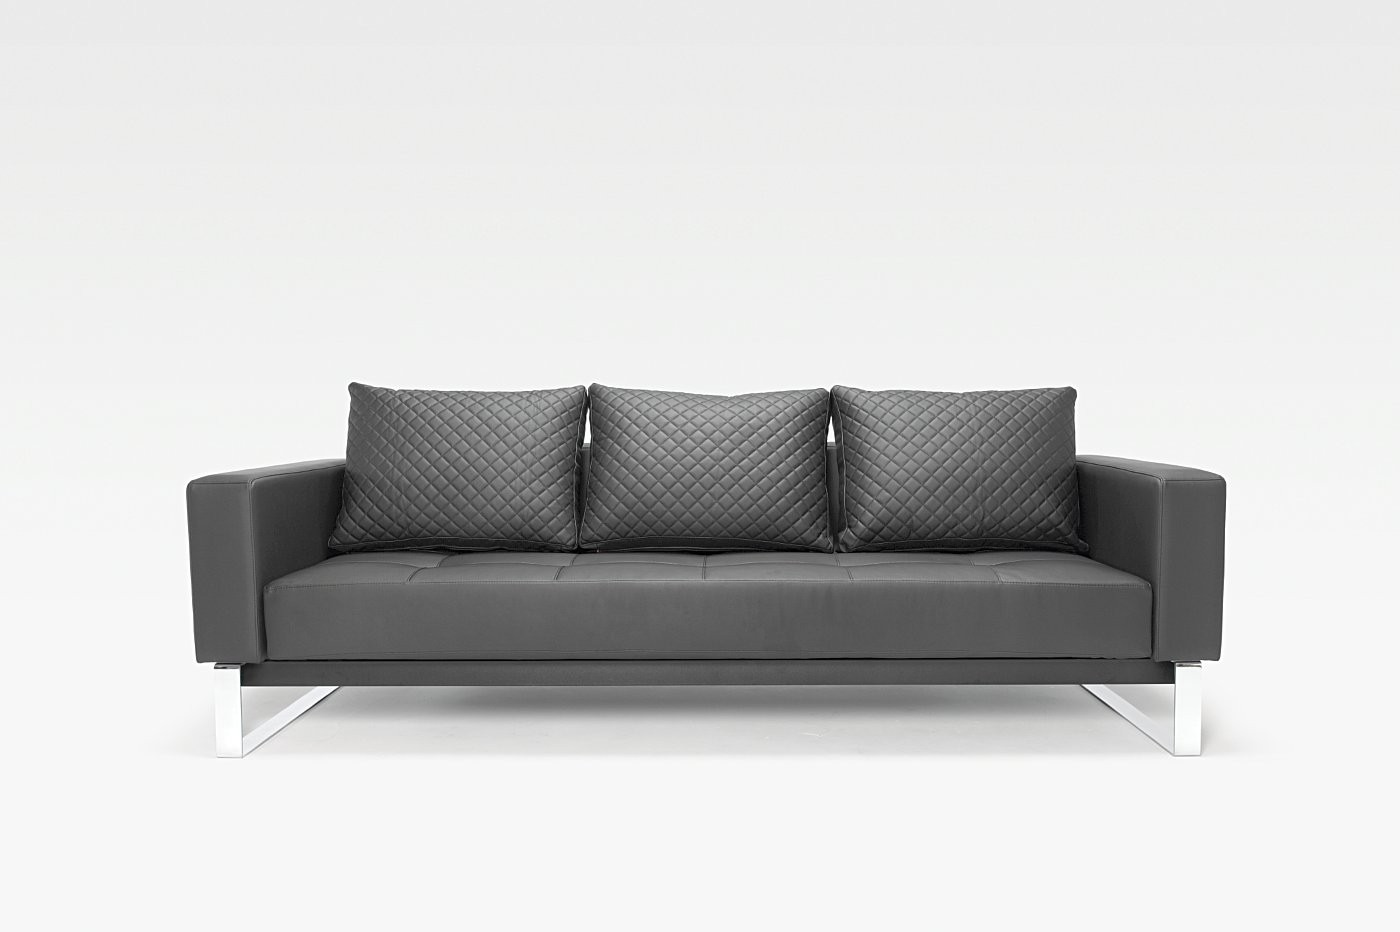 Cassius Q Deluxe Sofa Bed Buy From Nova Interiors Contemporary Furniture Store Located In